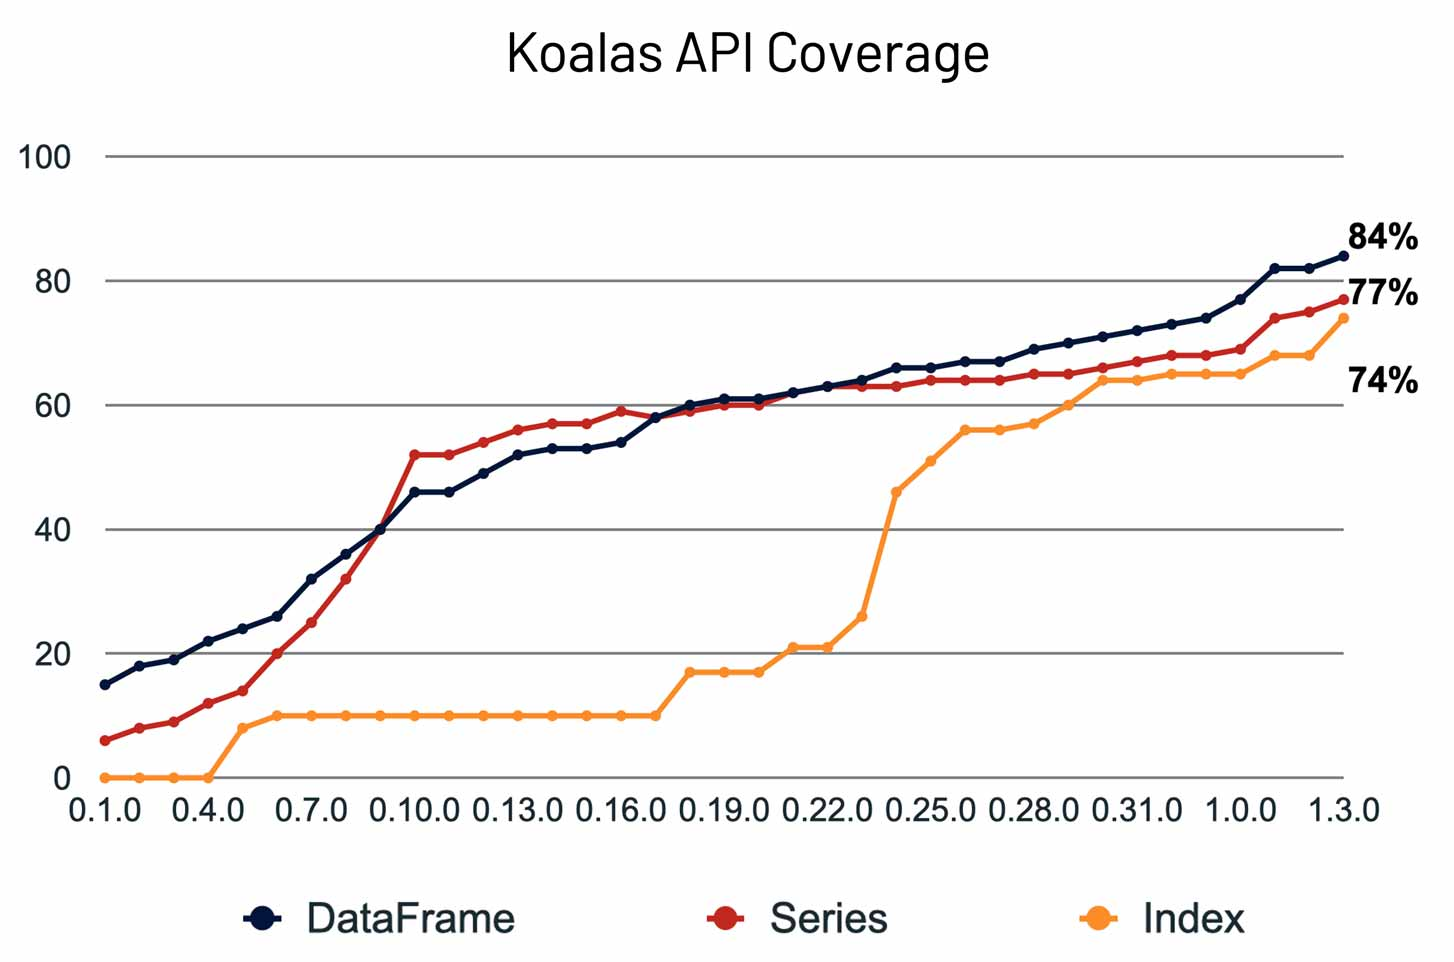 The growth of Koalas' API coverage over 2020.